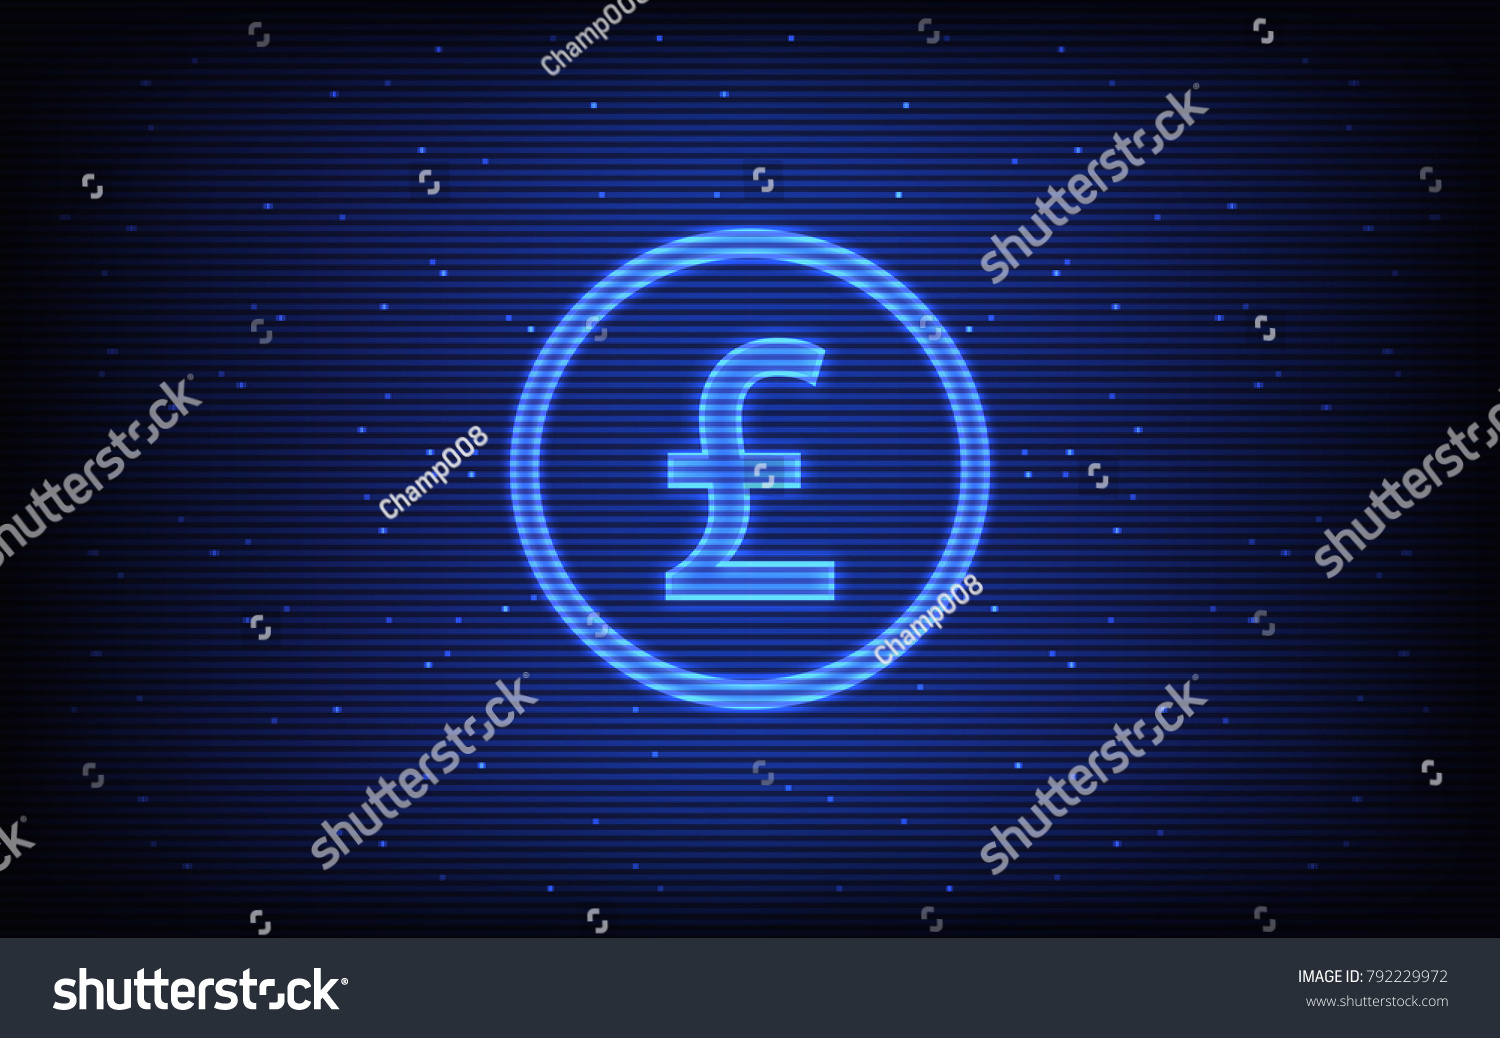 Abstract hologram technology background british pound stock vector abstract hologram technology background with british pound currency symbol in blue color biocorpaavc Images